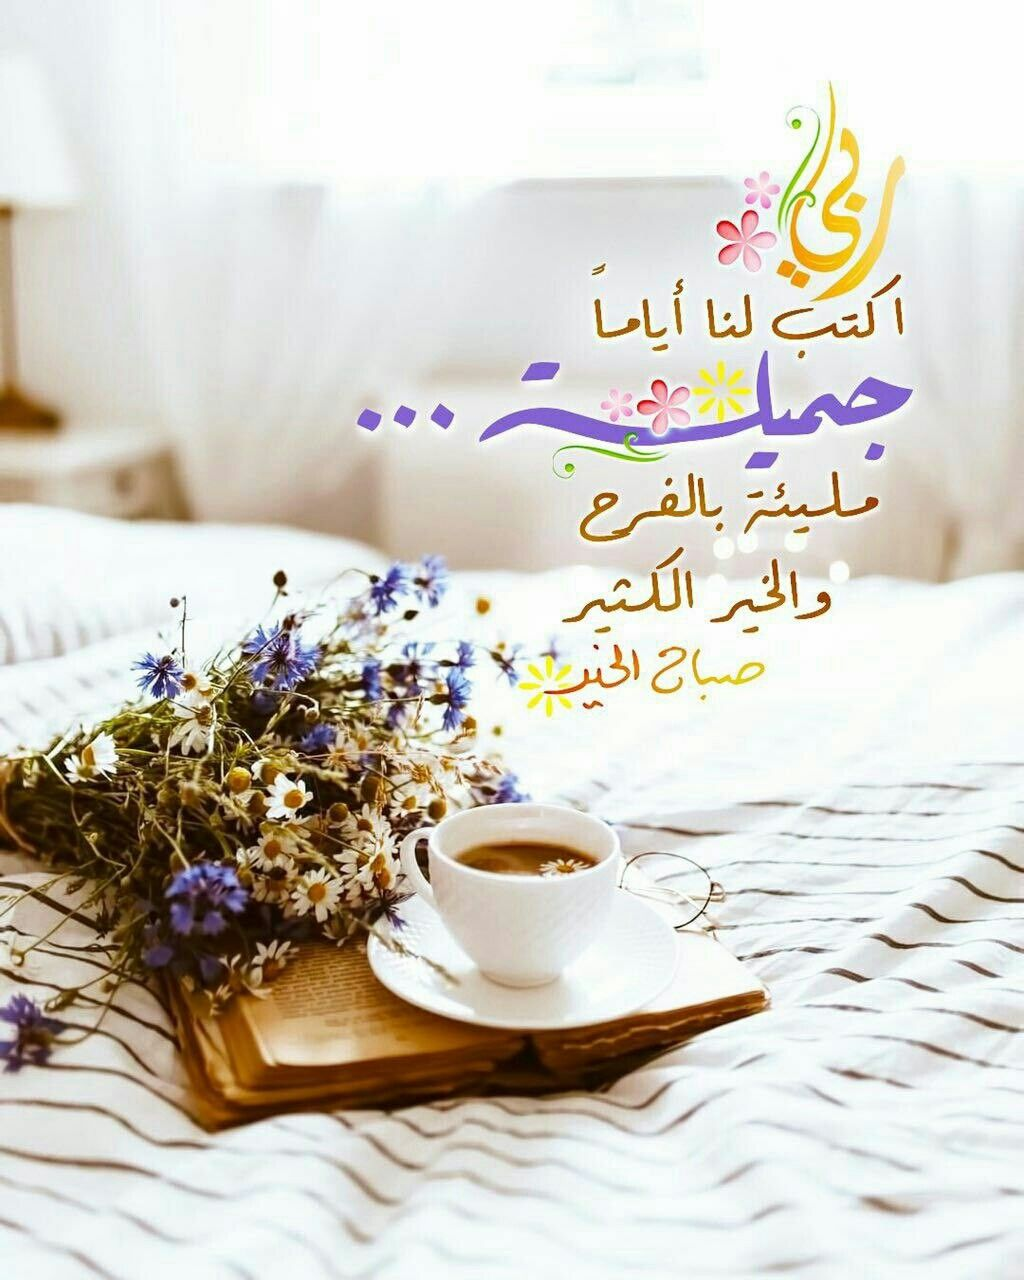 Pin By Hayfaa On أجيب دعوة الداعي Beautiful Morning Messages Good Morning Images Flowers Morning Greeting